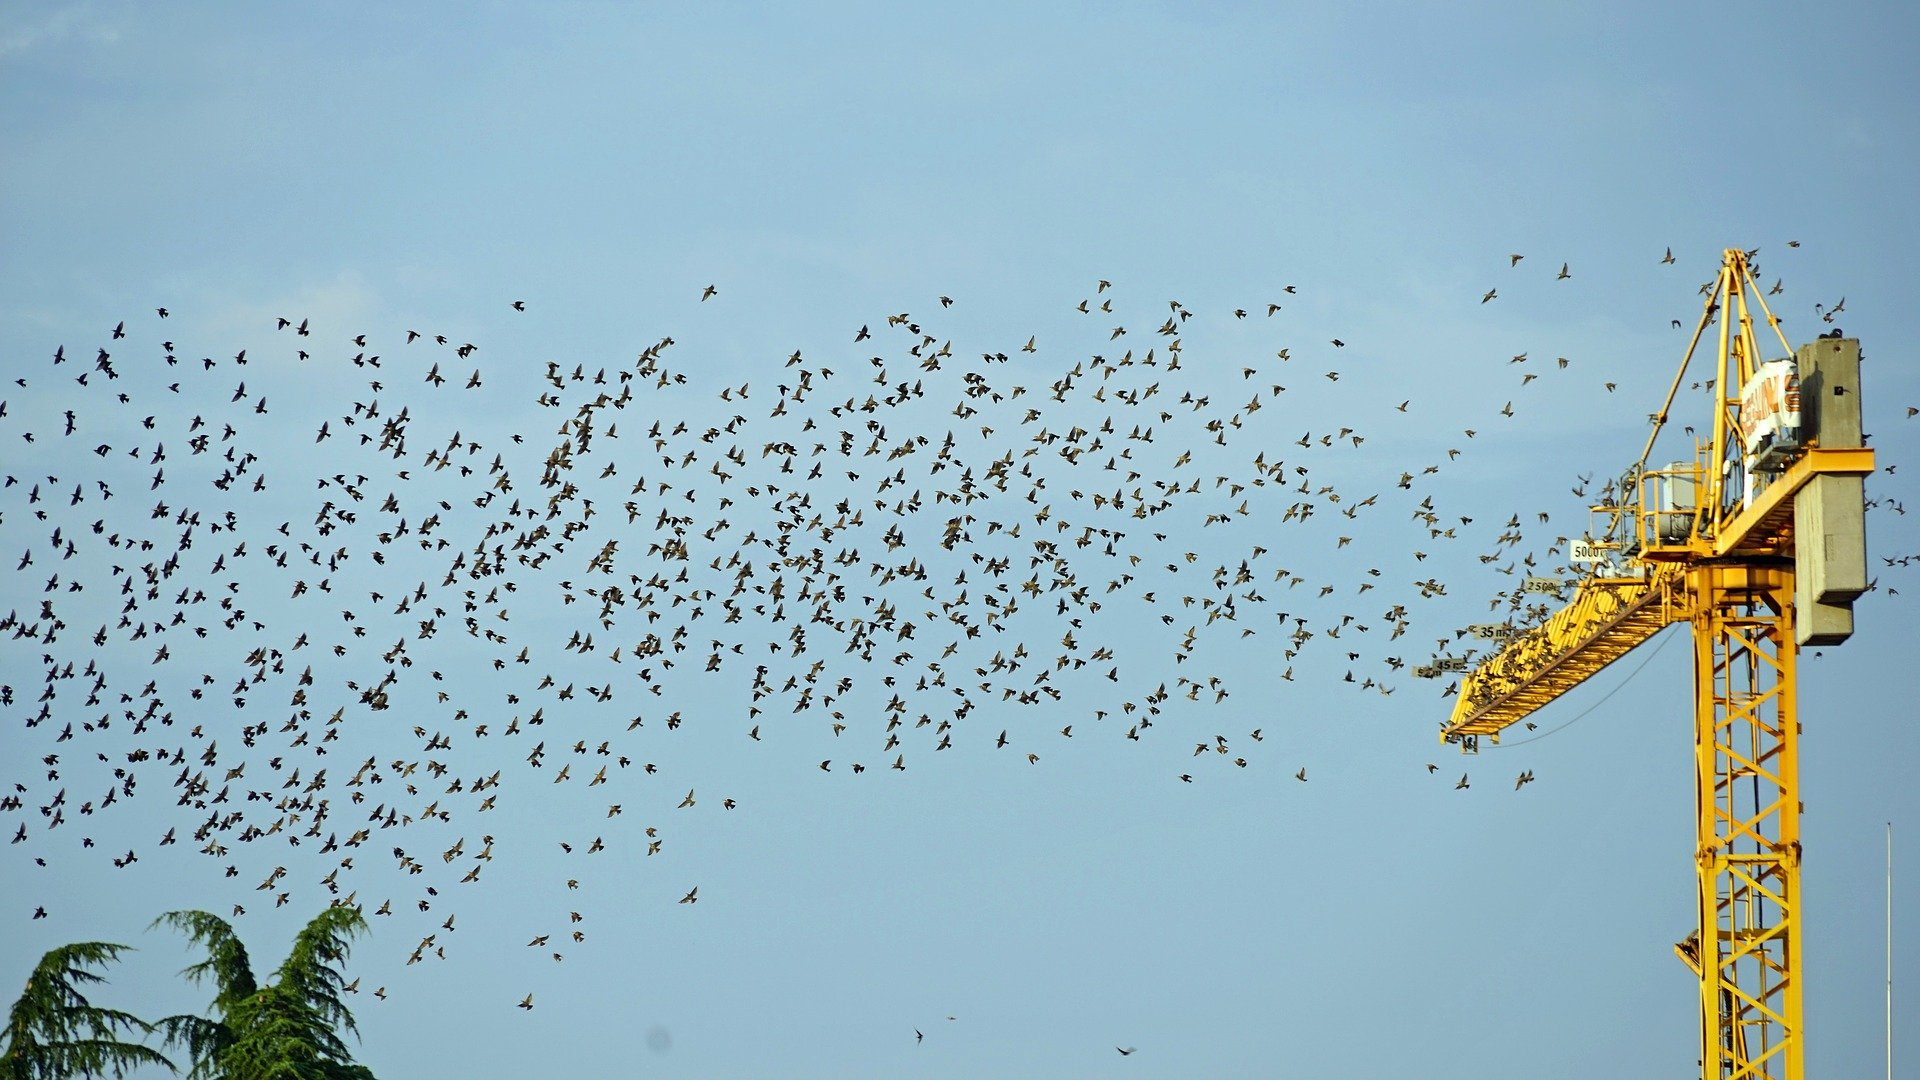 MaxPixel.freegreatpicture.com-Fly-Flock-Of-Birds-Crane-Bird-Migration-2147788